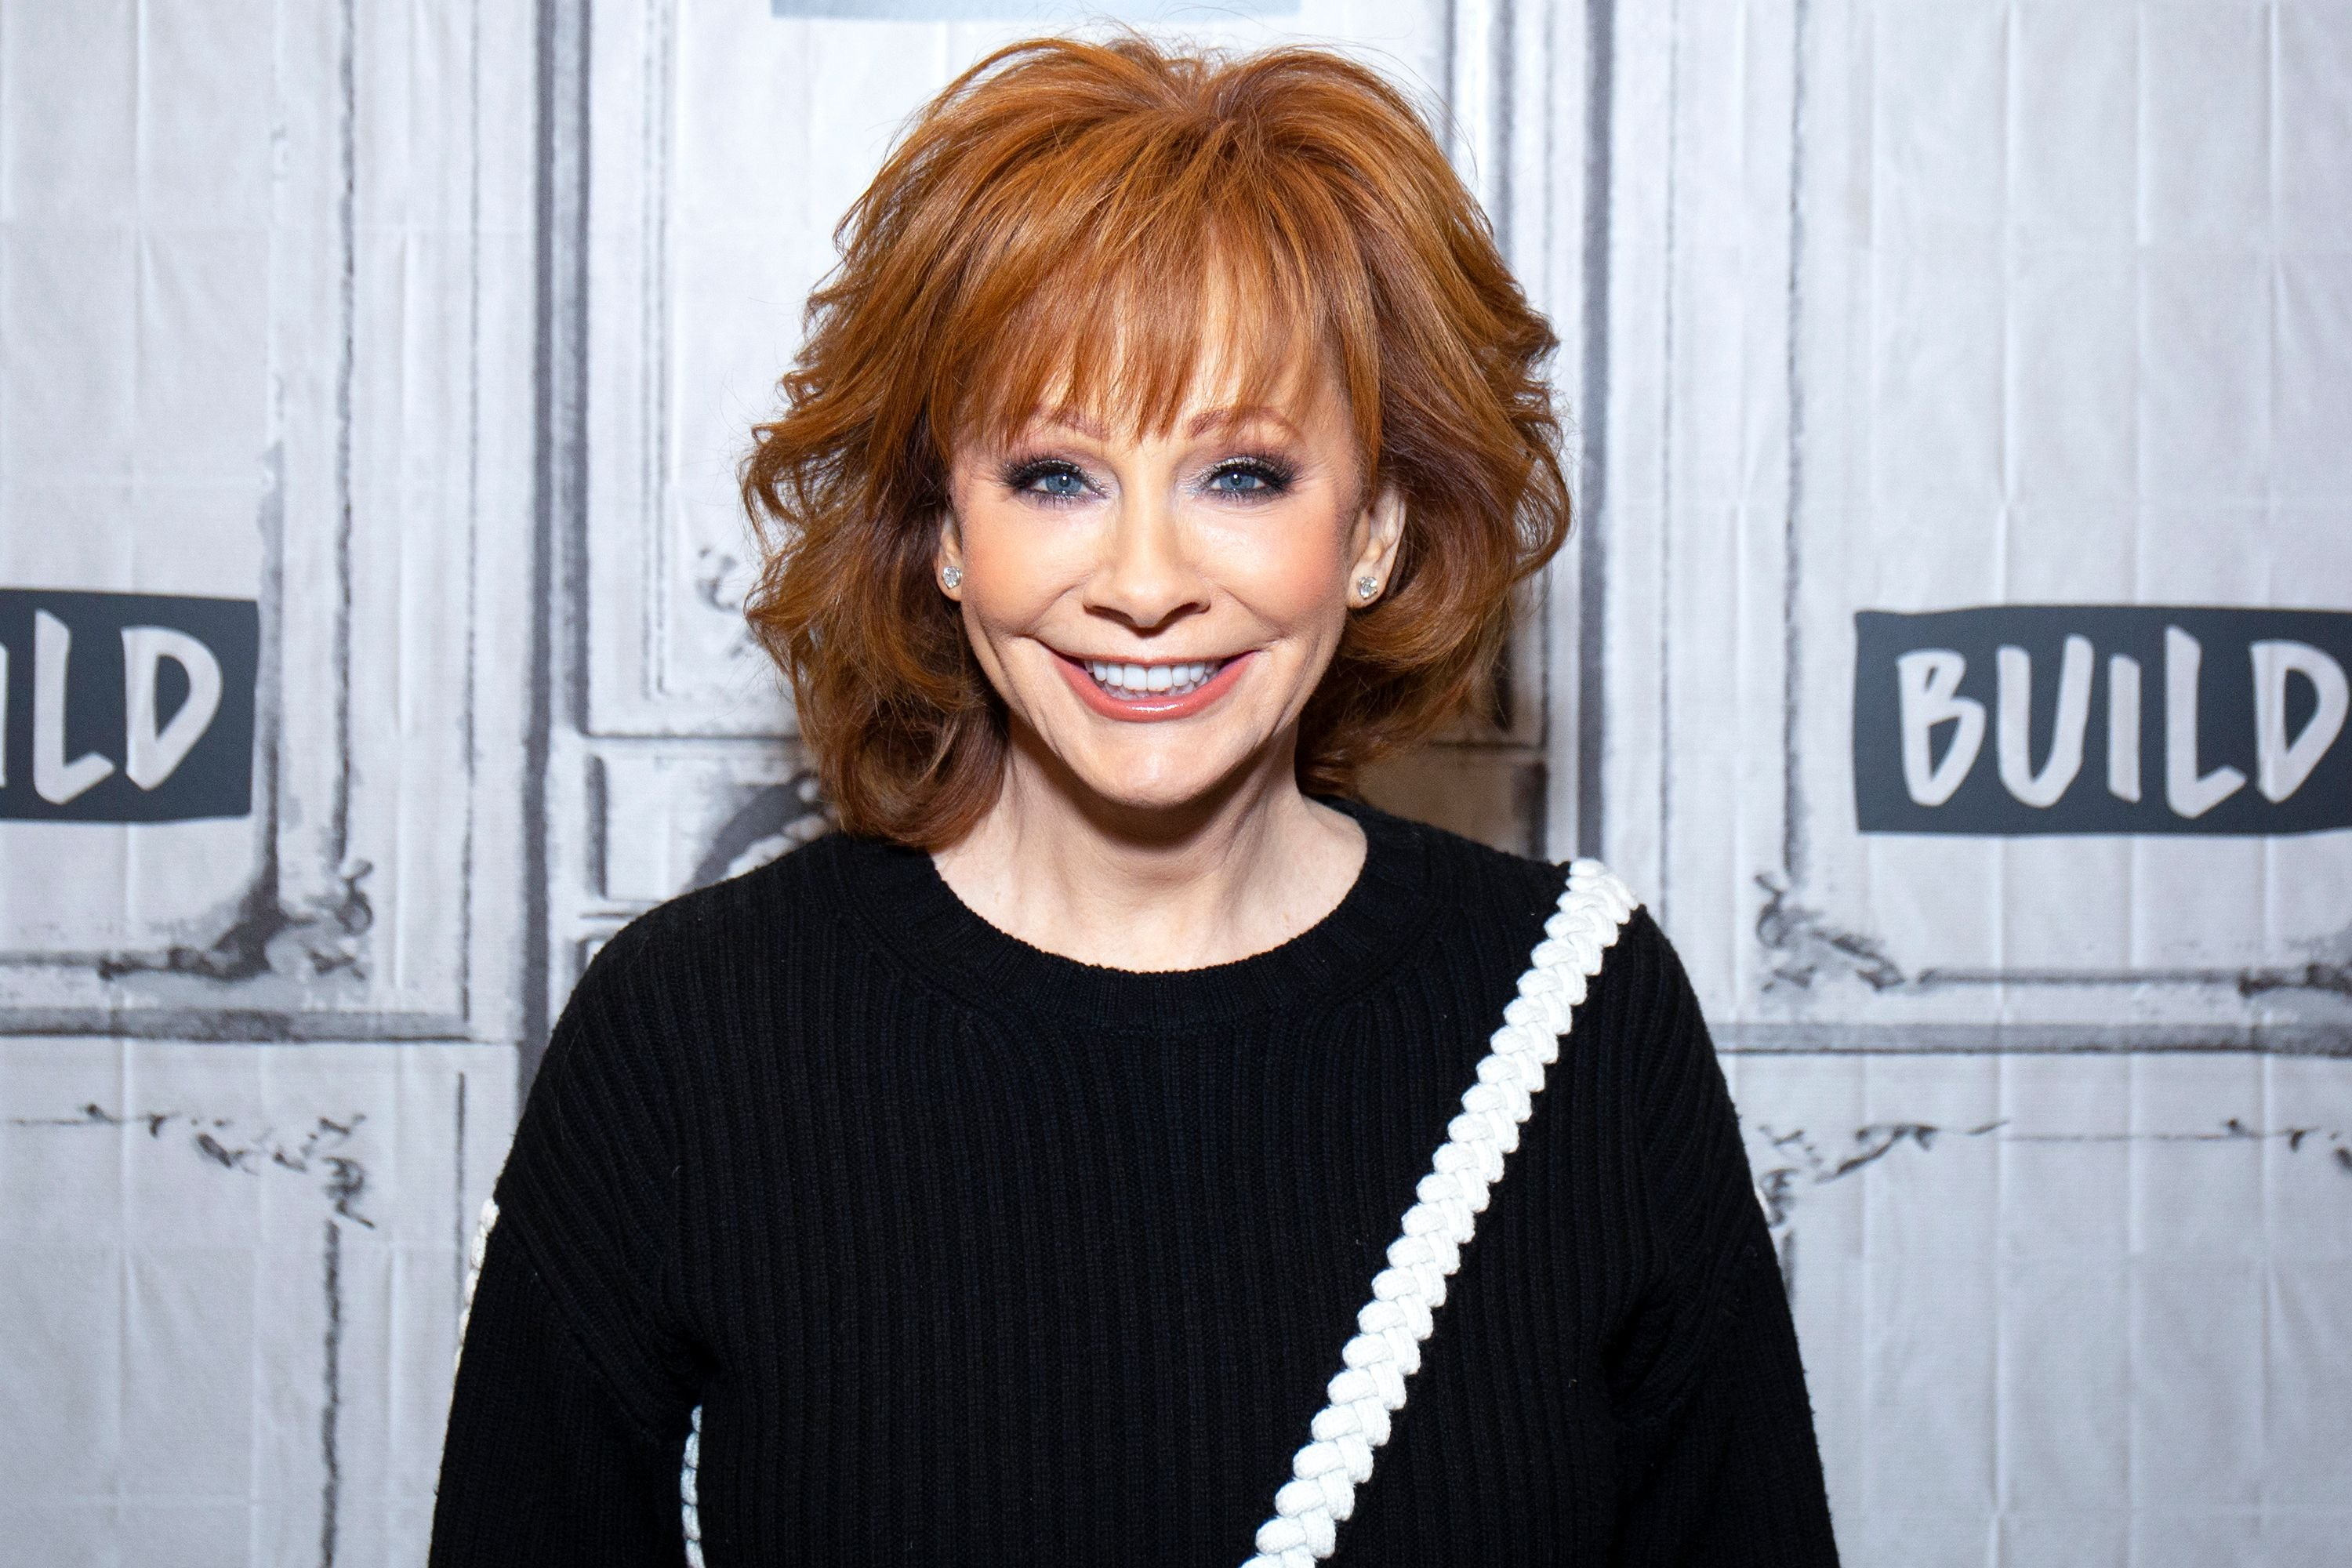 Reba McEntire at Build Studio on February 20, 2019 | Photo: Getty Images